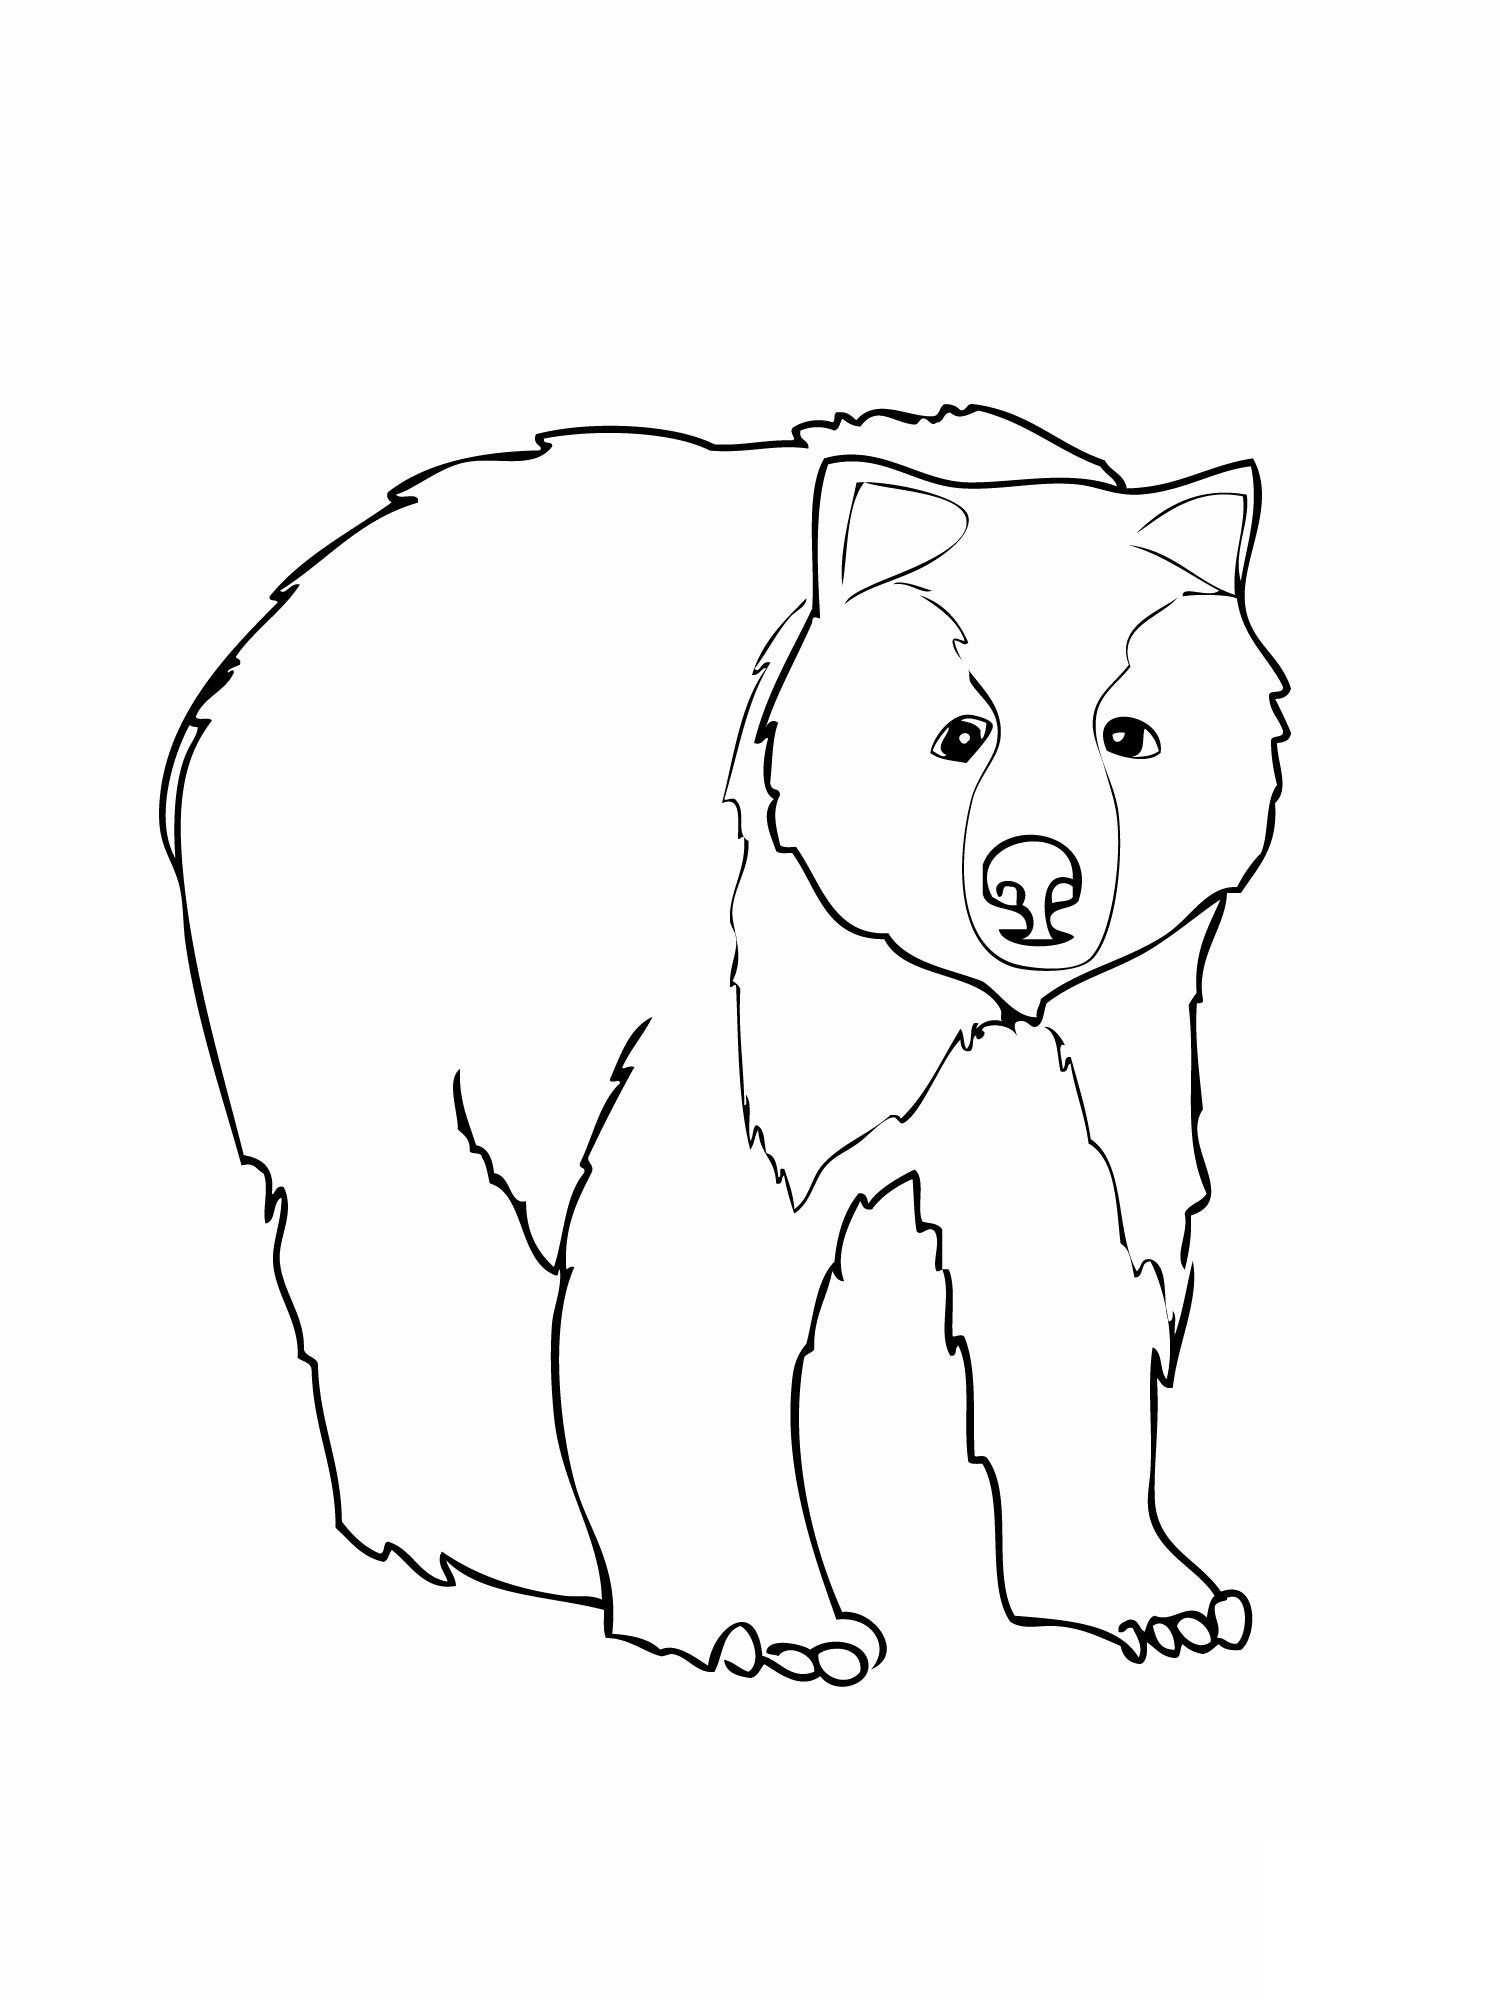 coloring pages of bears grizzly bear coloring pages kidsuki pages of coloring bears